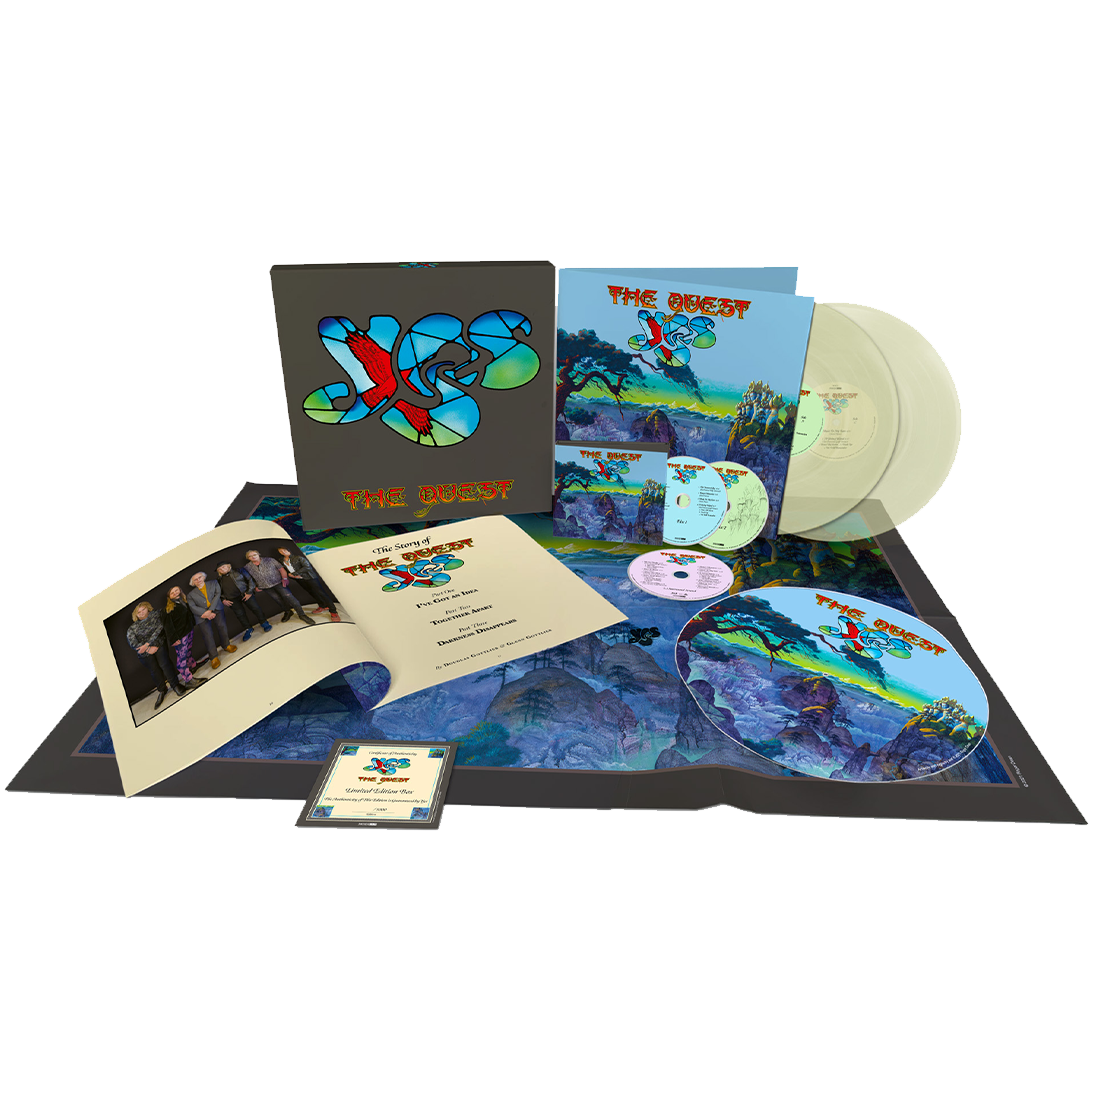 Yes - The Quest Limited Edition Deluxe Box Set Glow in the Dark 2LP + 2CD + Blu Ray